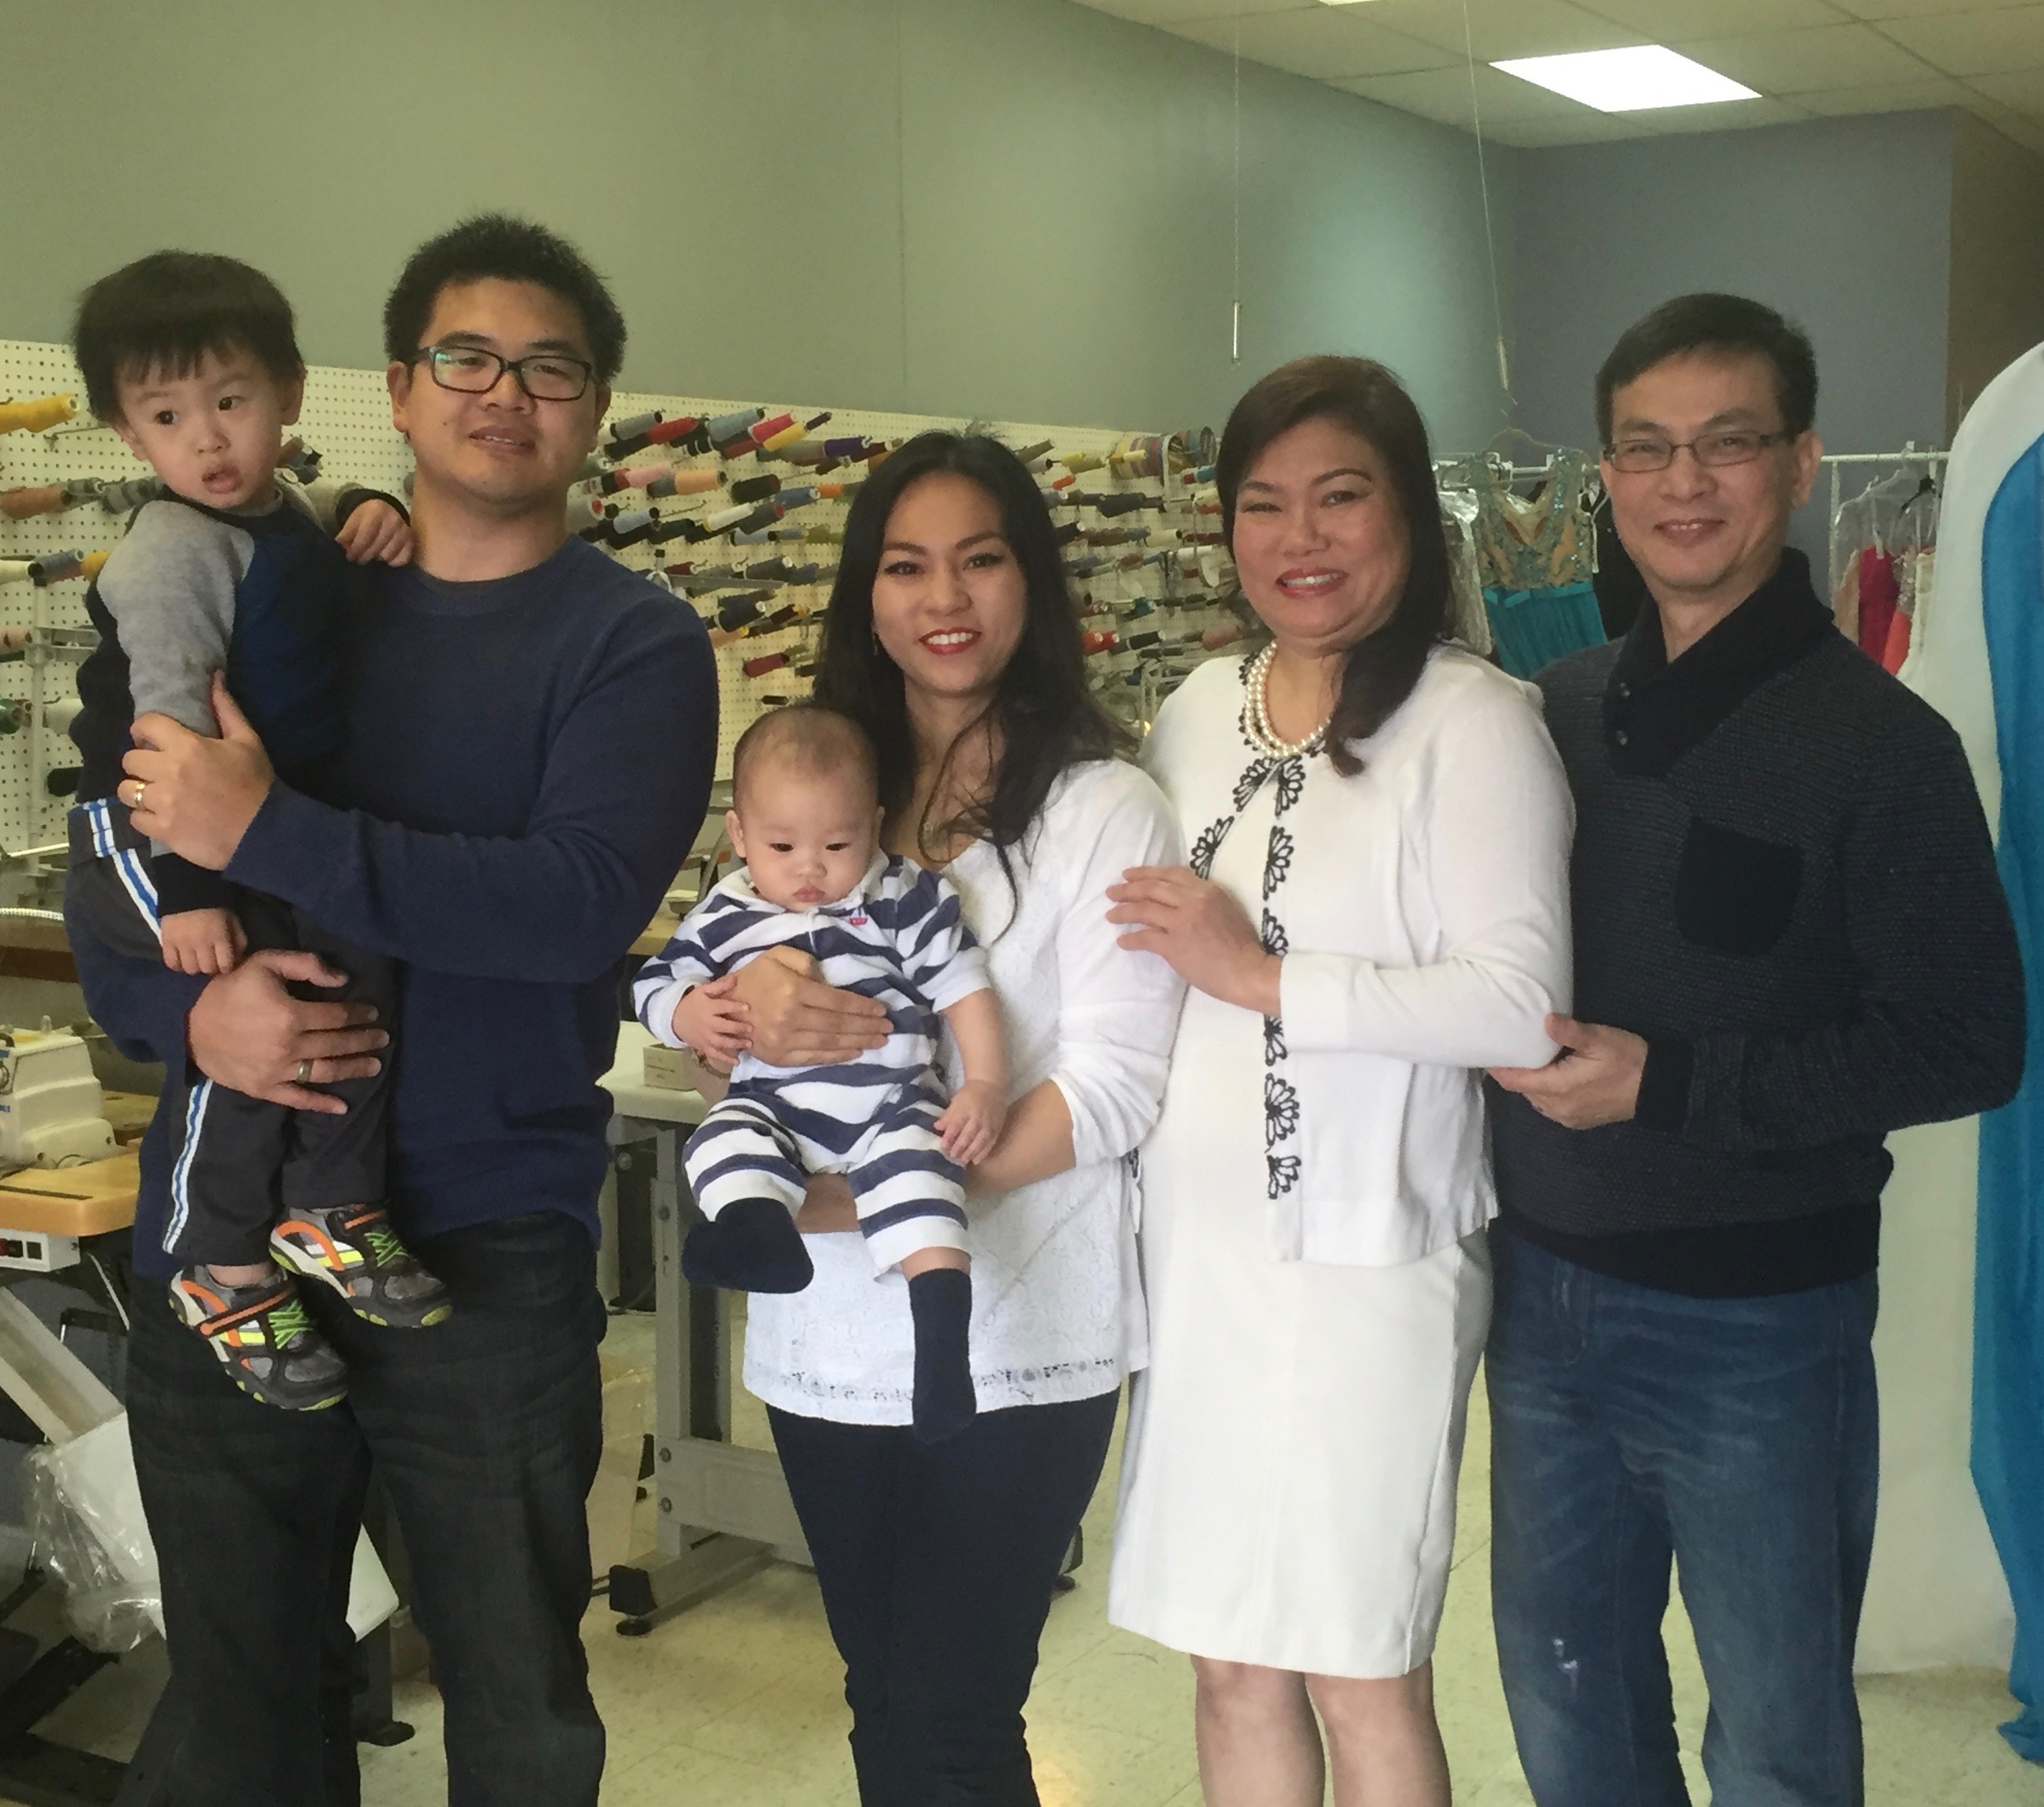 ,em>From left to right- Long Vu, Thanh Vu's husband, with son Jacob Vu; Thanh Vu, with son Nathan Vu; Theresa Vu; and Thinh Vu